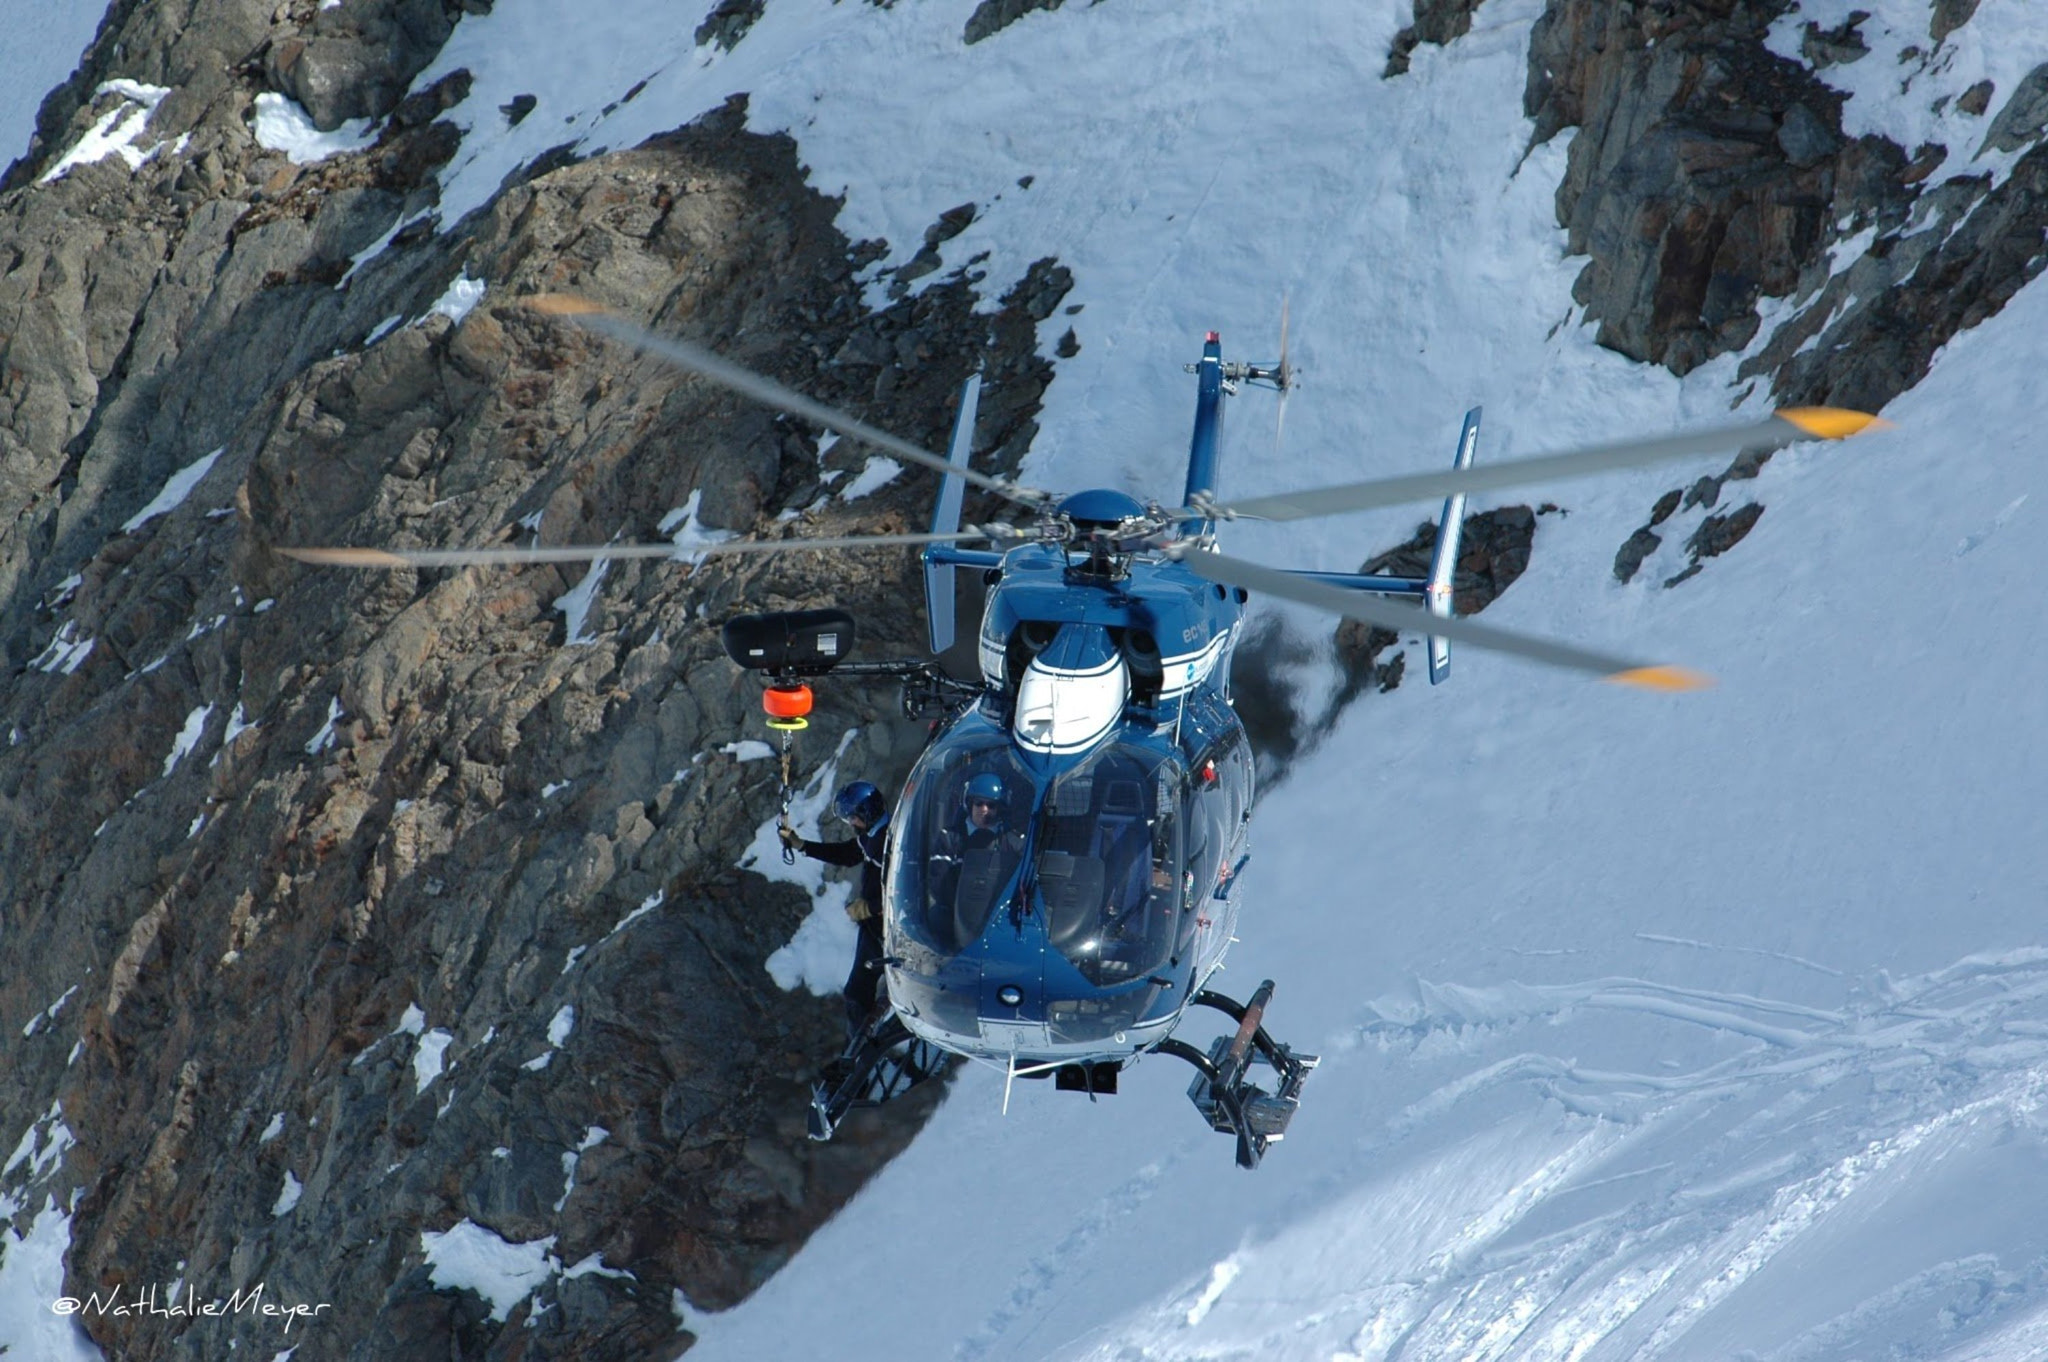 Photograph Mountain rescue - French alps by Nathalie Meyer on 500px